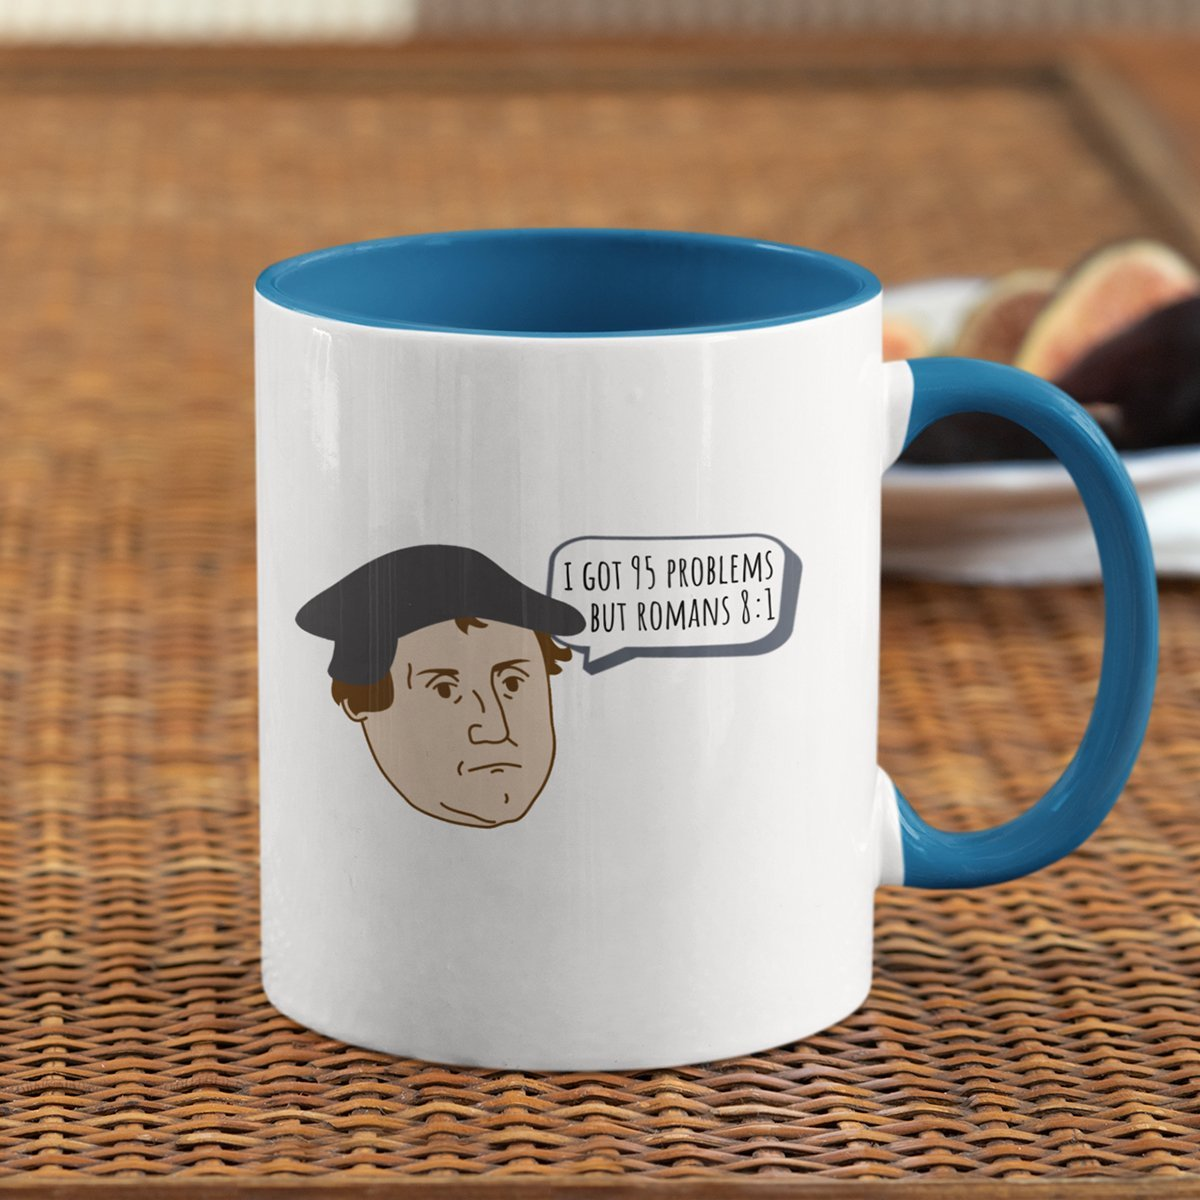 I Got 95 Problems (11oz Accent Mug) - SDG Clothing